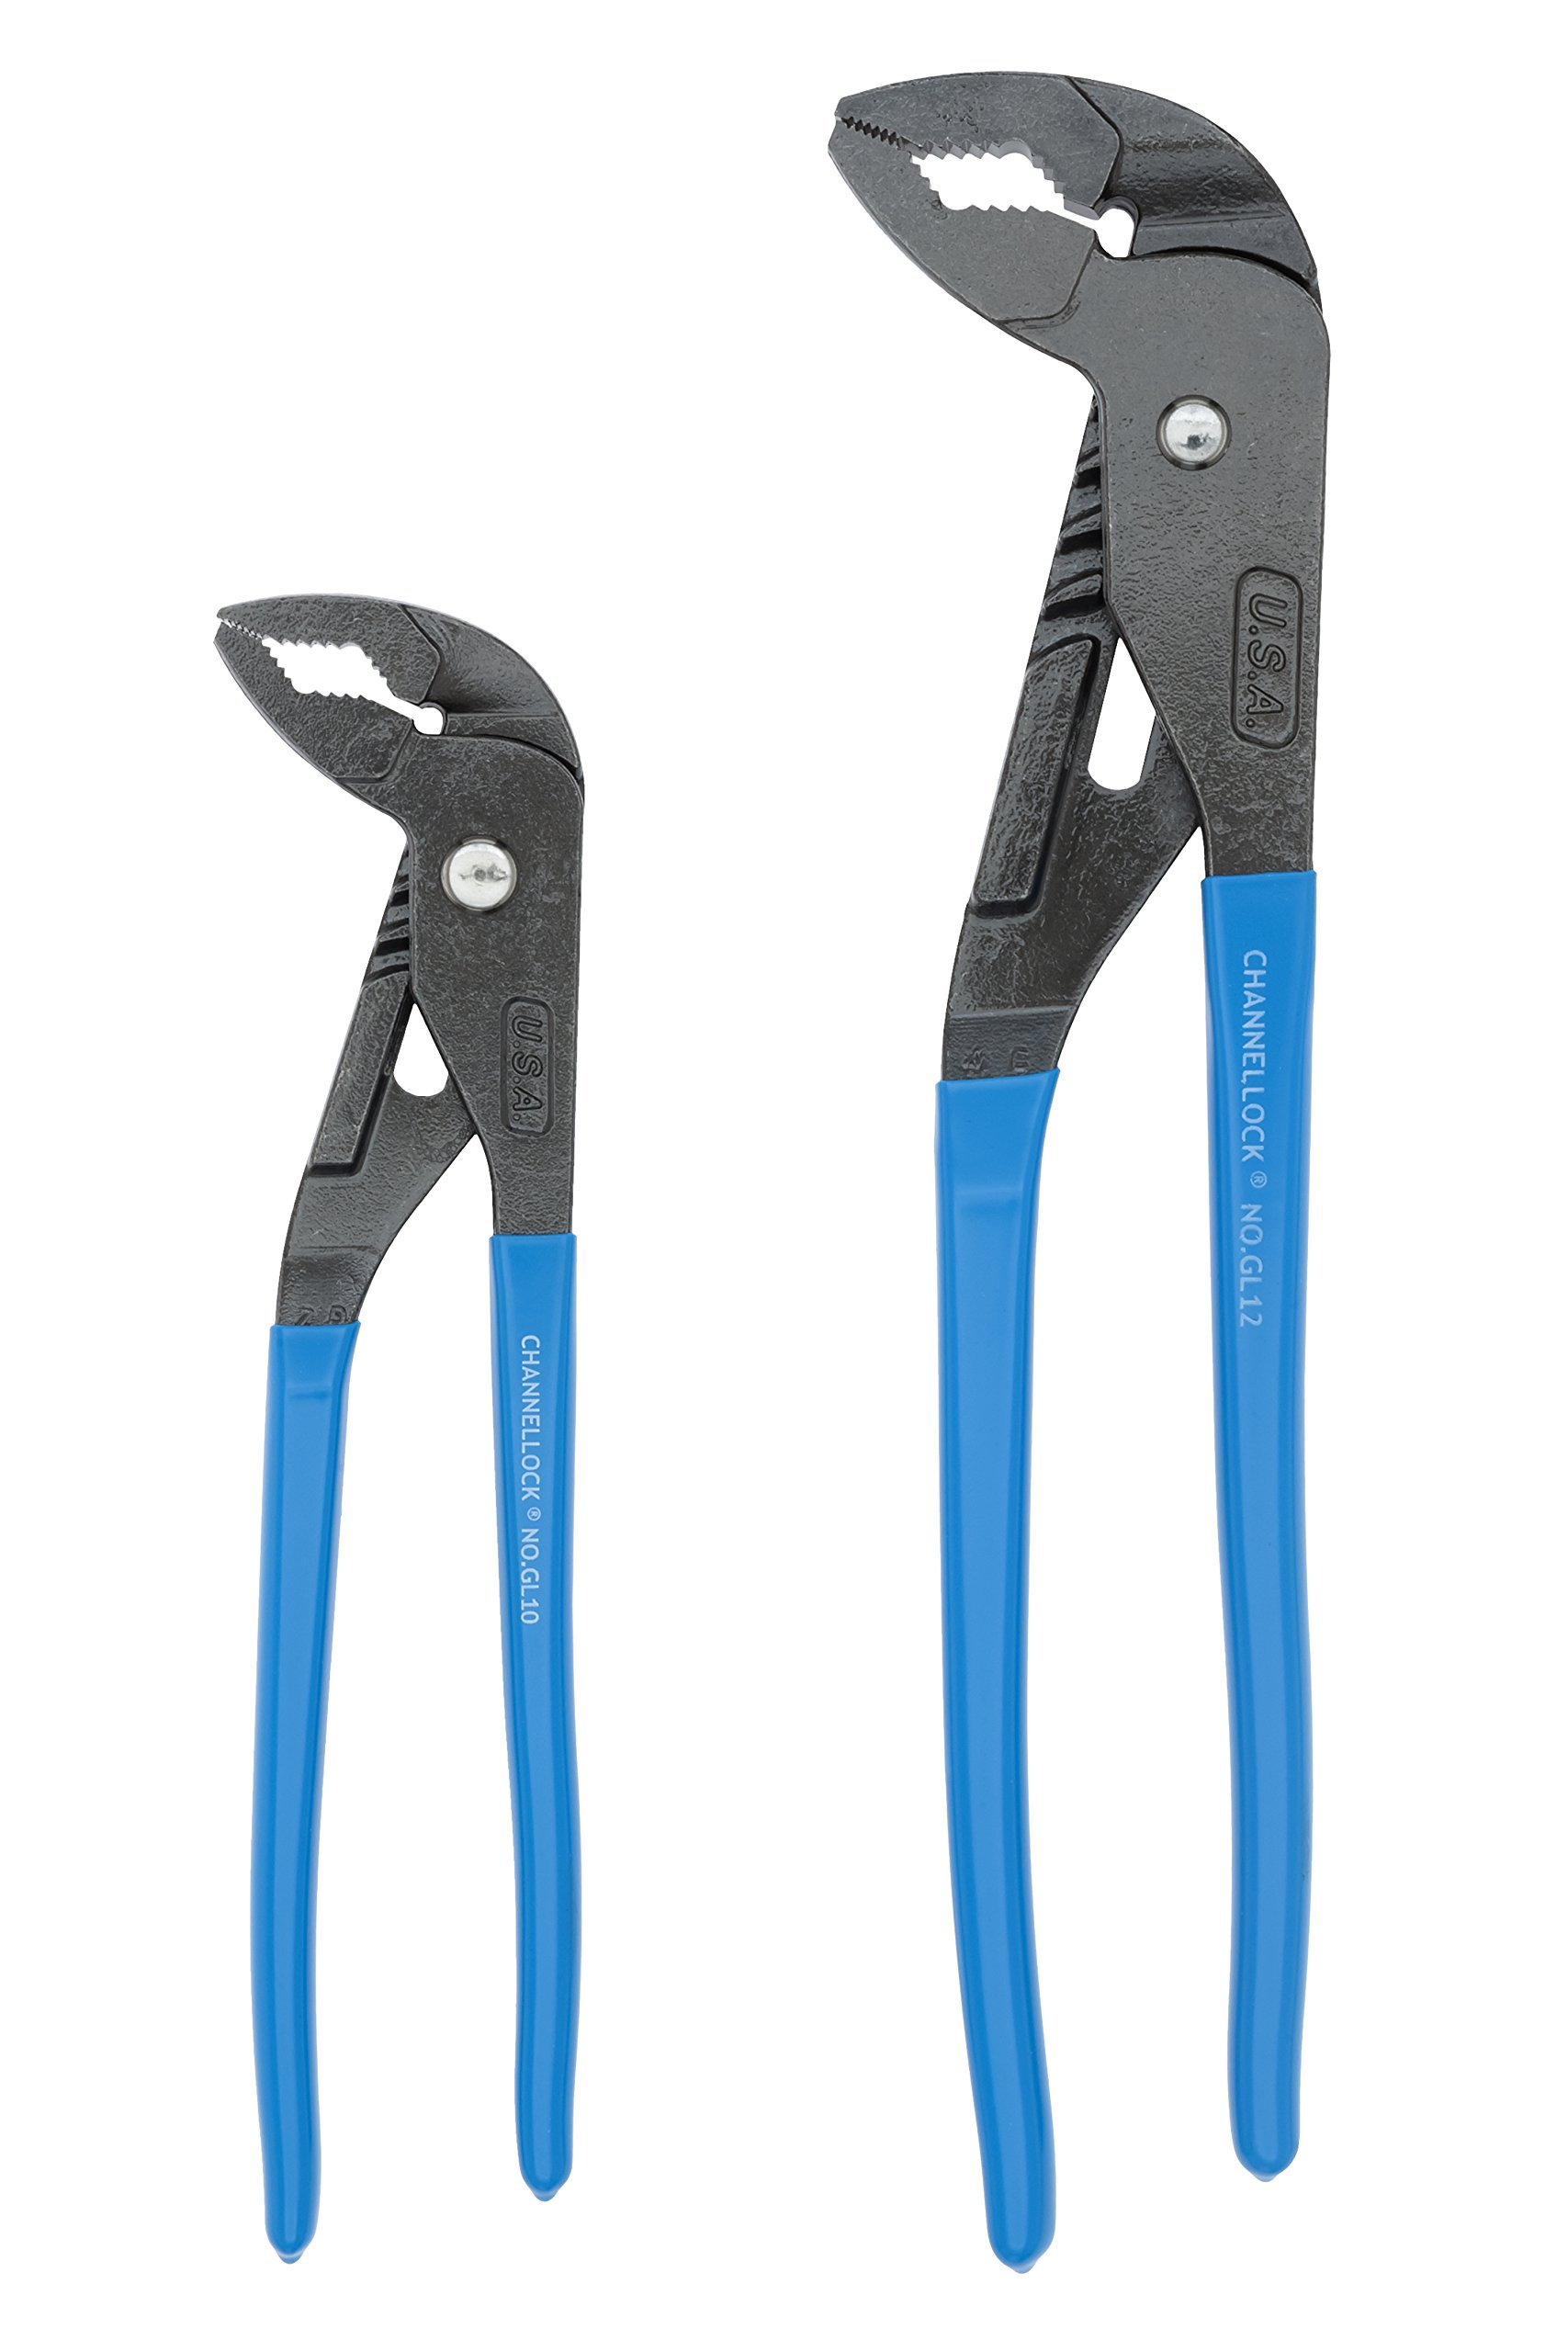 Channellock GLS-1 Griplock Gift Set containing GL-12 and GL-10 Pliers